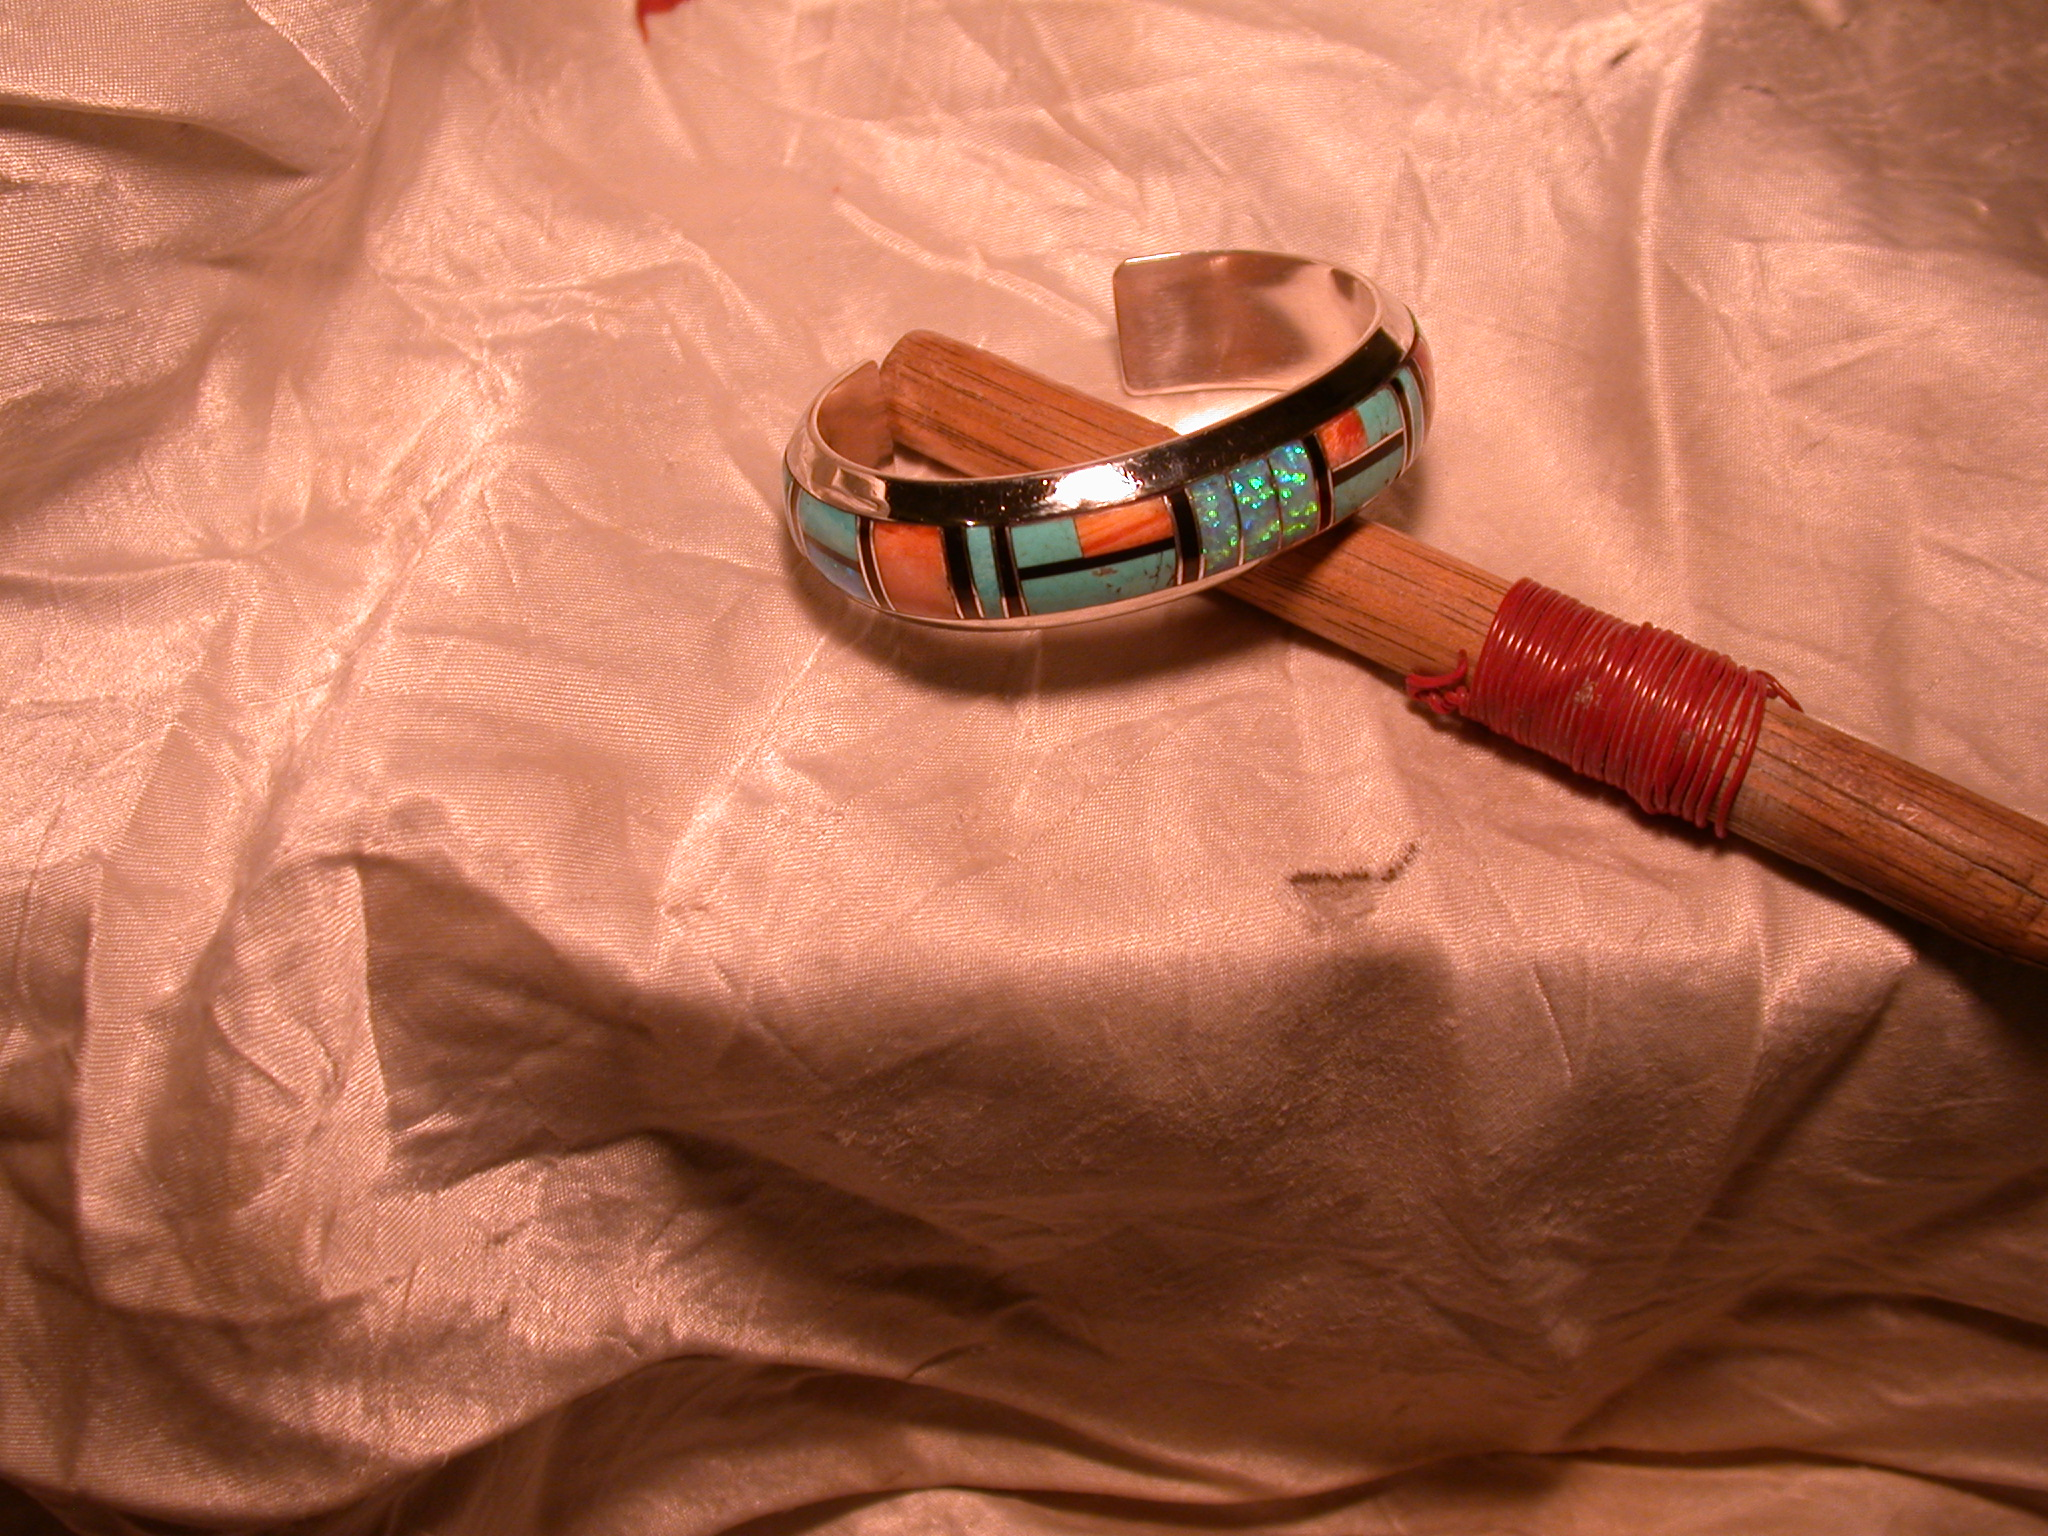 Inlaid turquoise jewelery repair